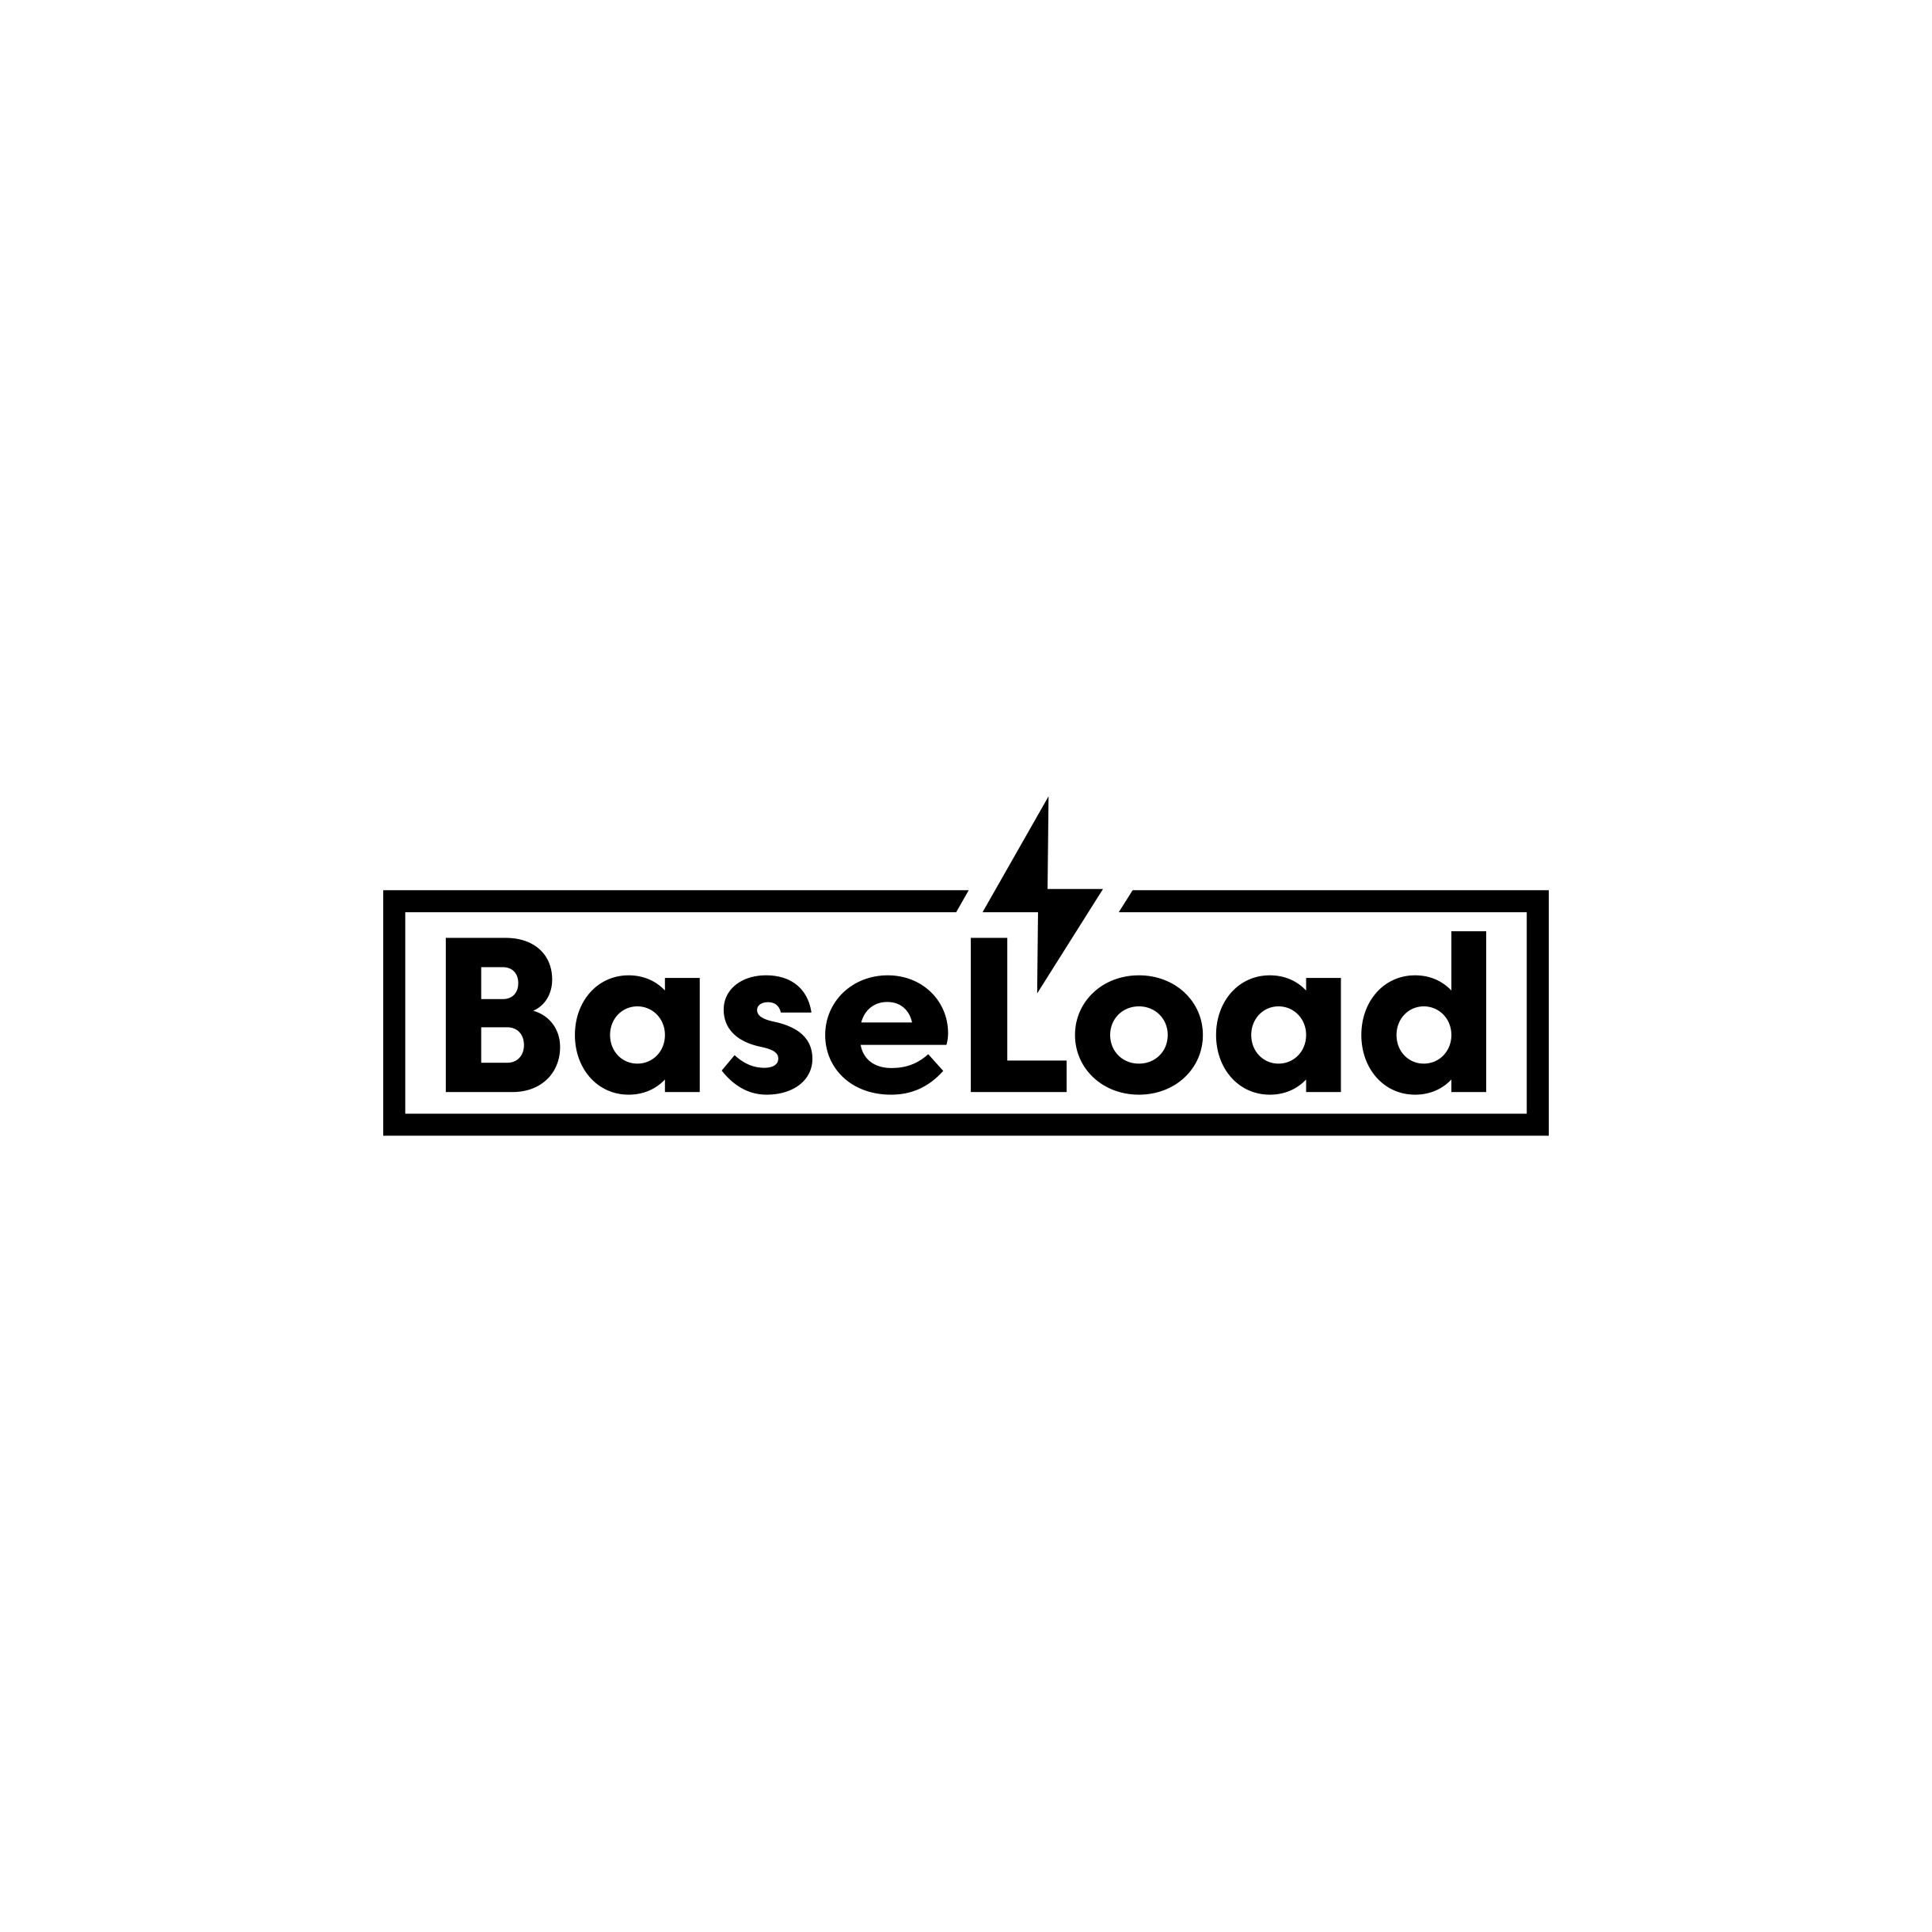 Baseload an industrial power generator needs a logo